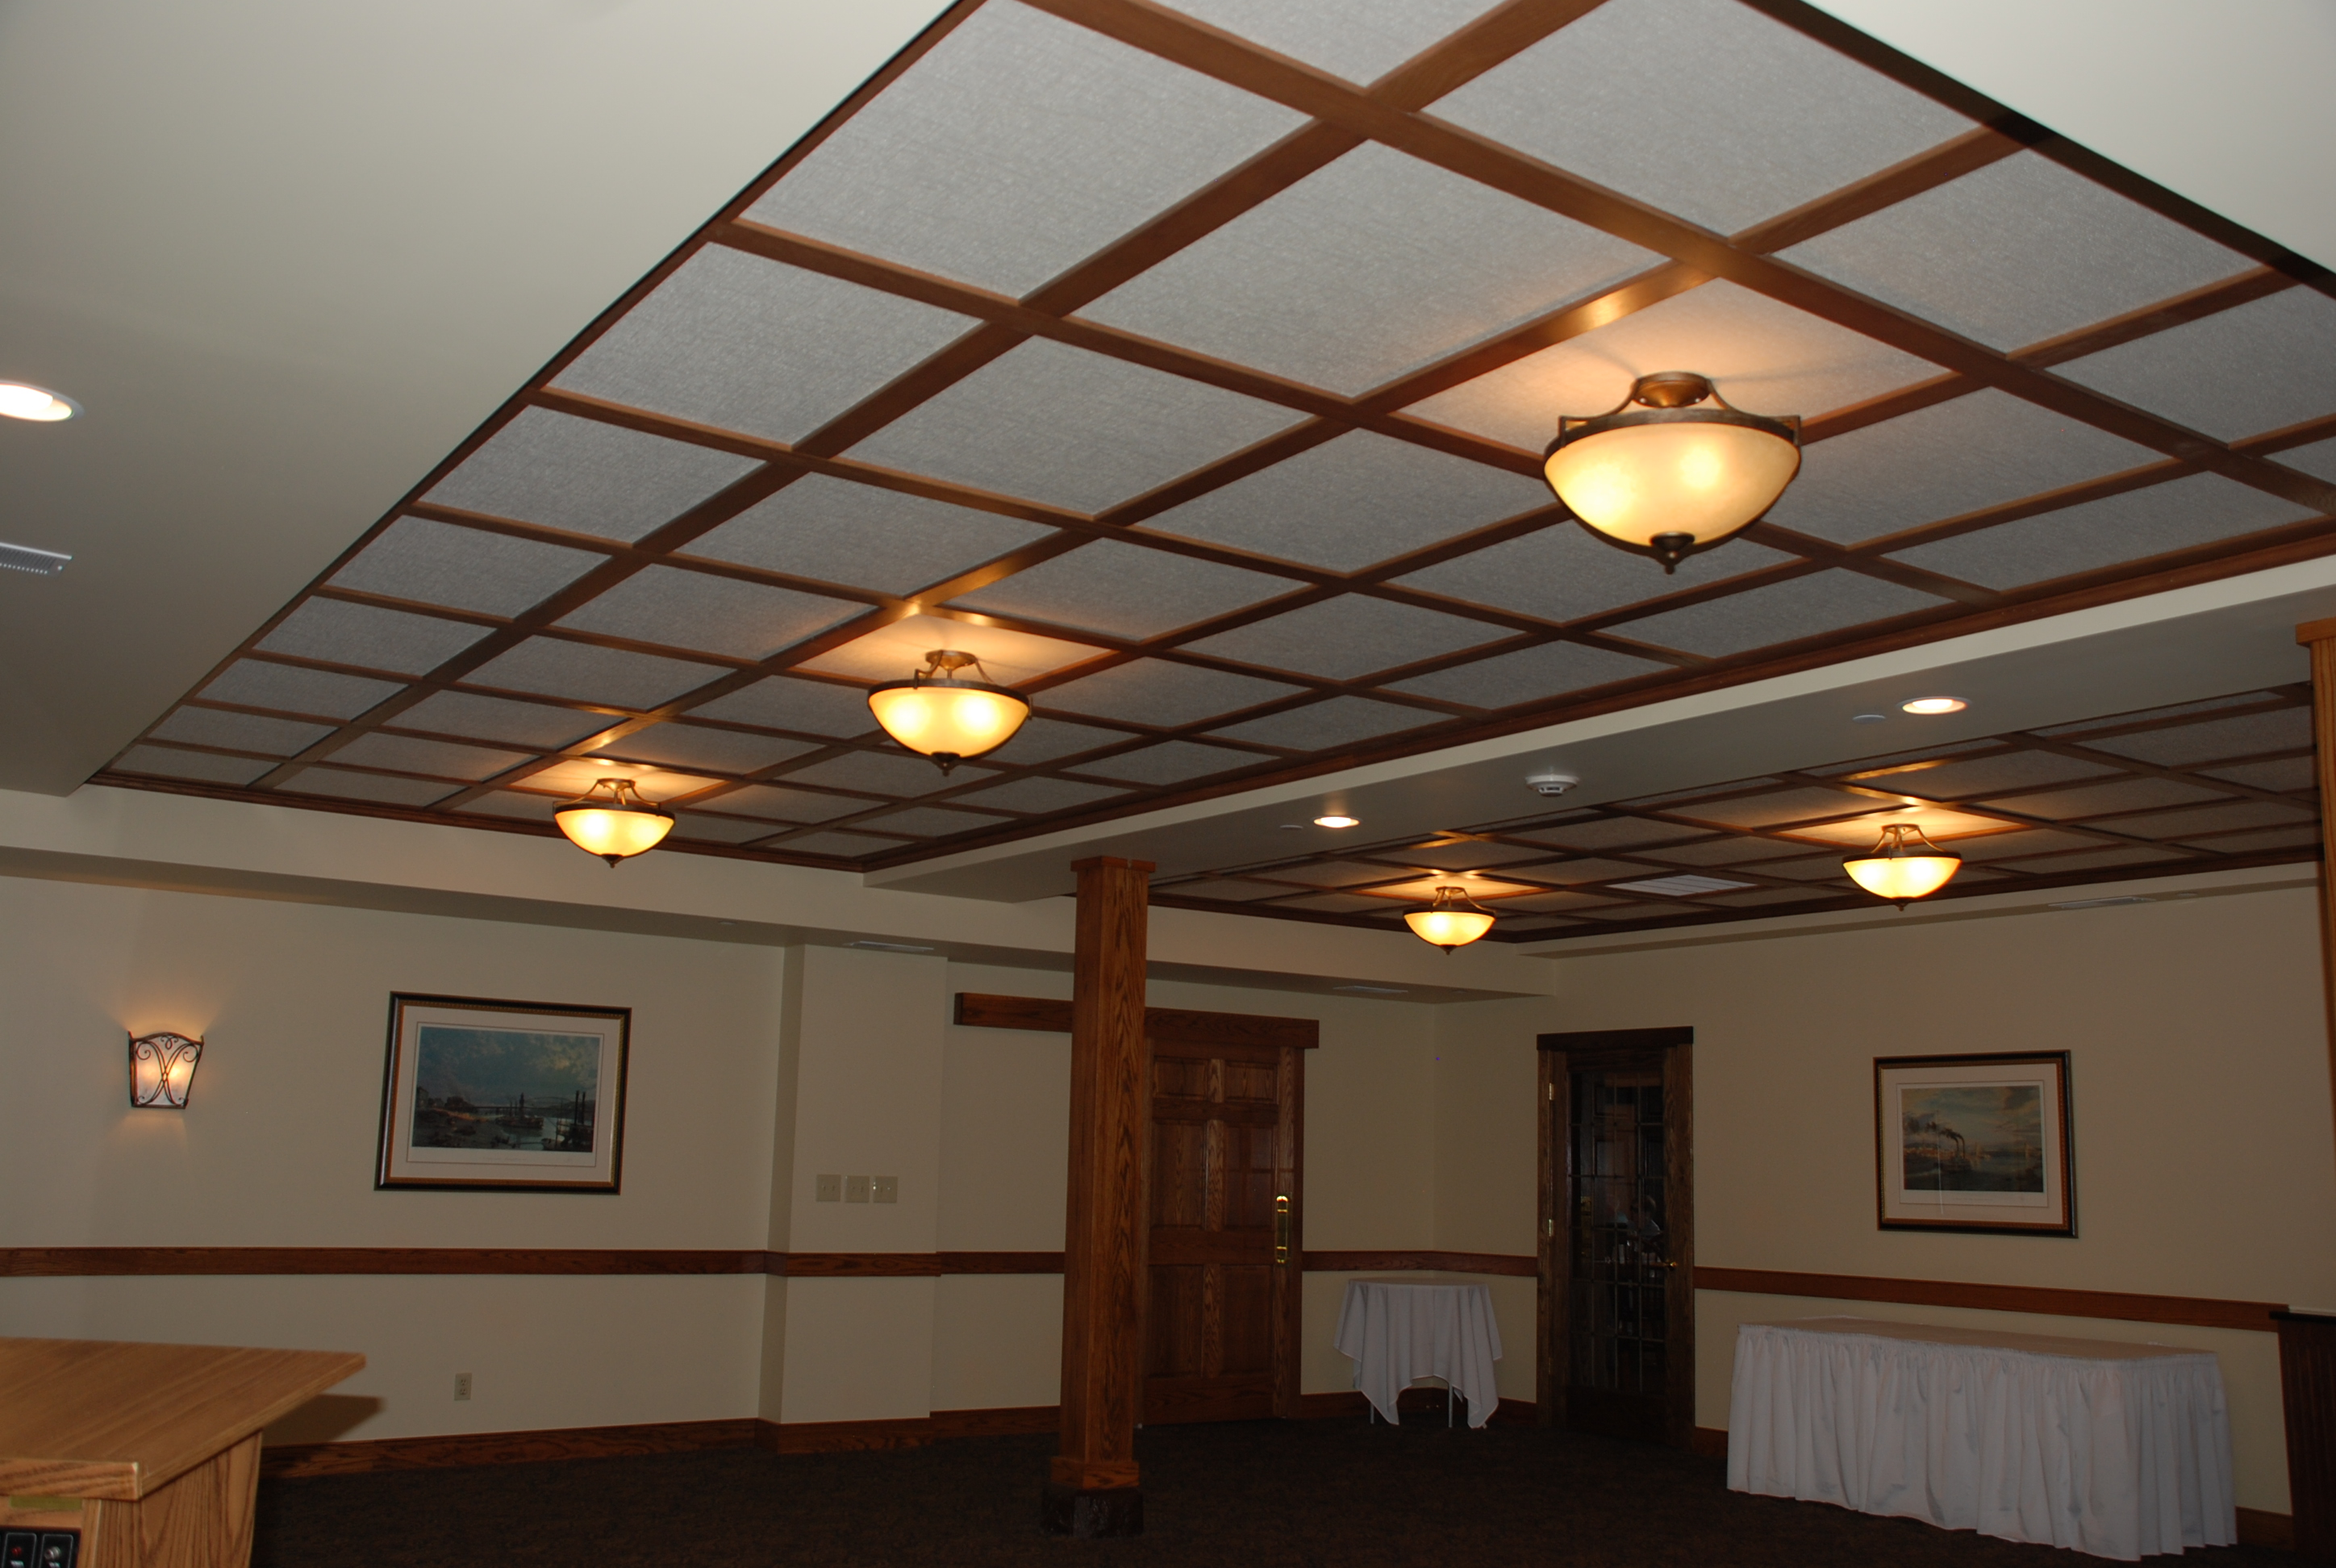 Woodgrid coffered ceilings by midwestern wood products co wood basement ceiling with flat panels wood drop suspended ceiling dailygadgetfo Gallery